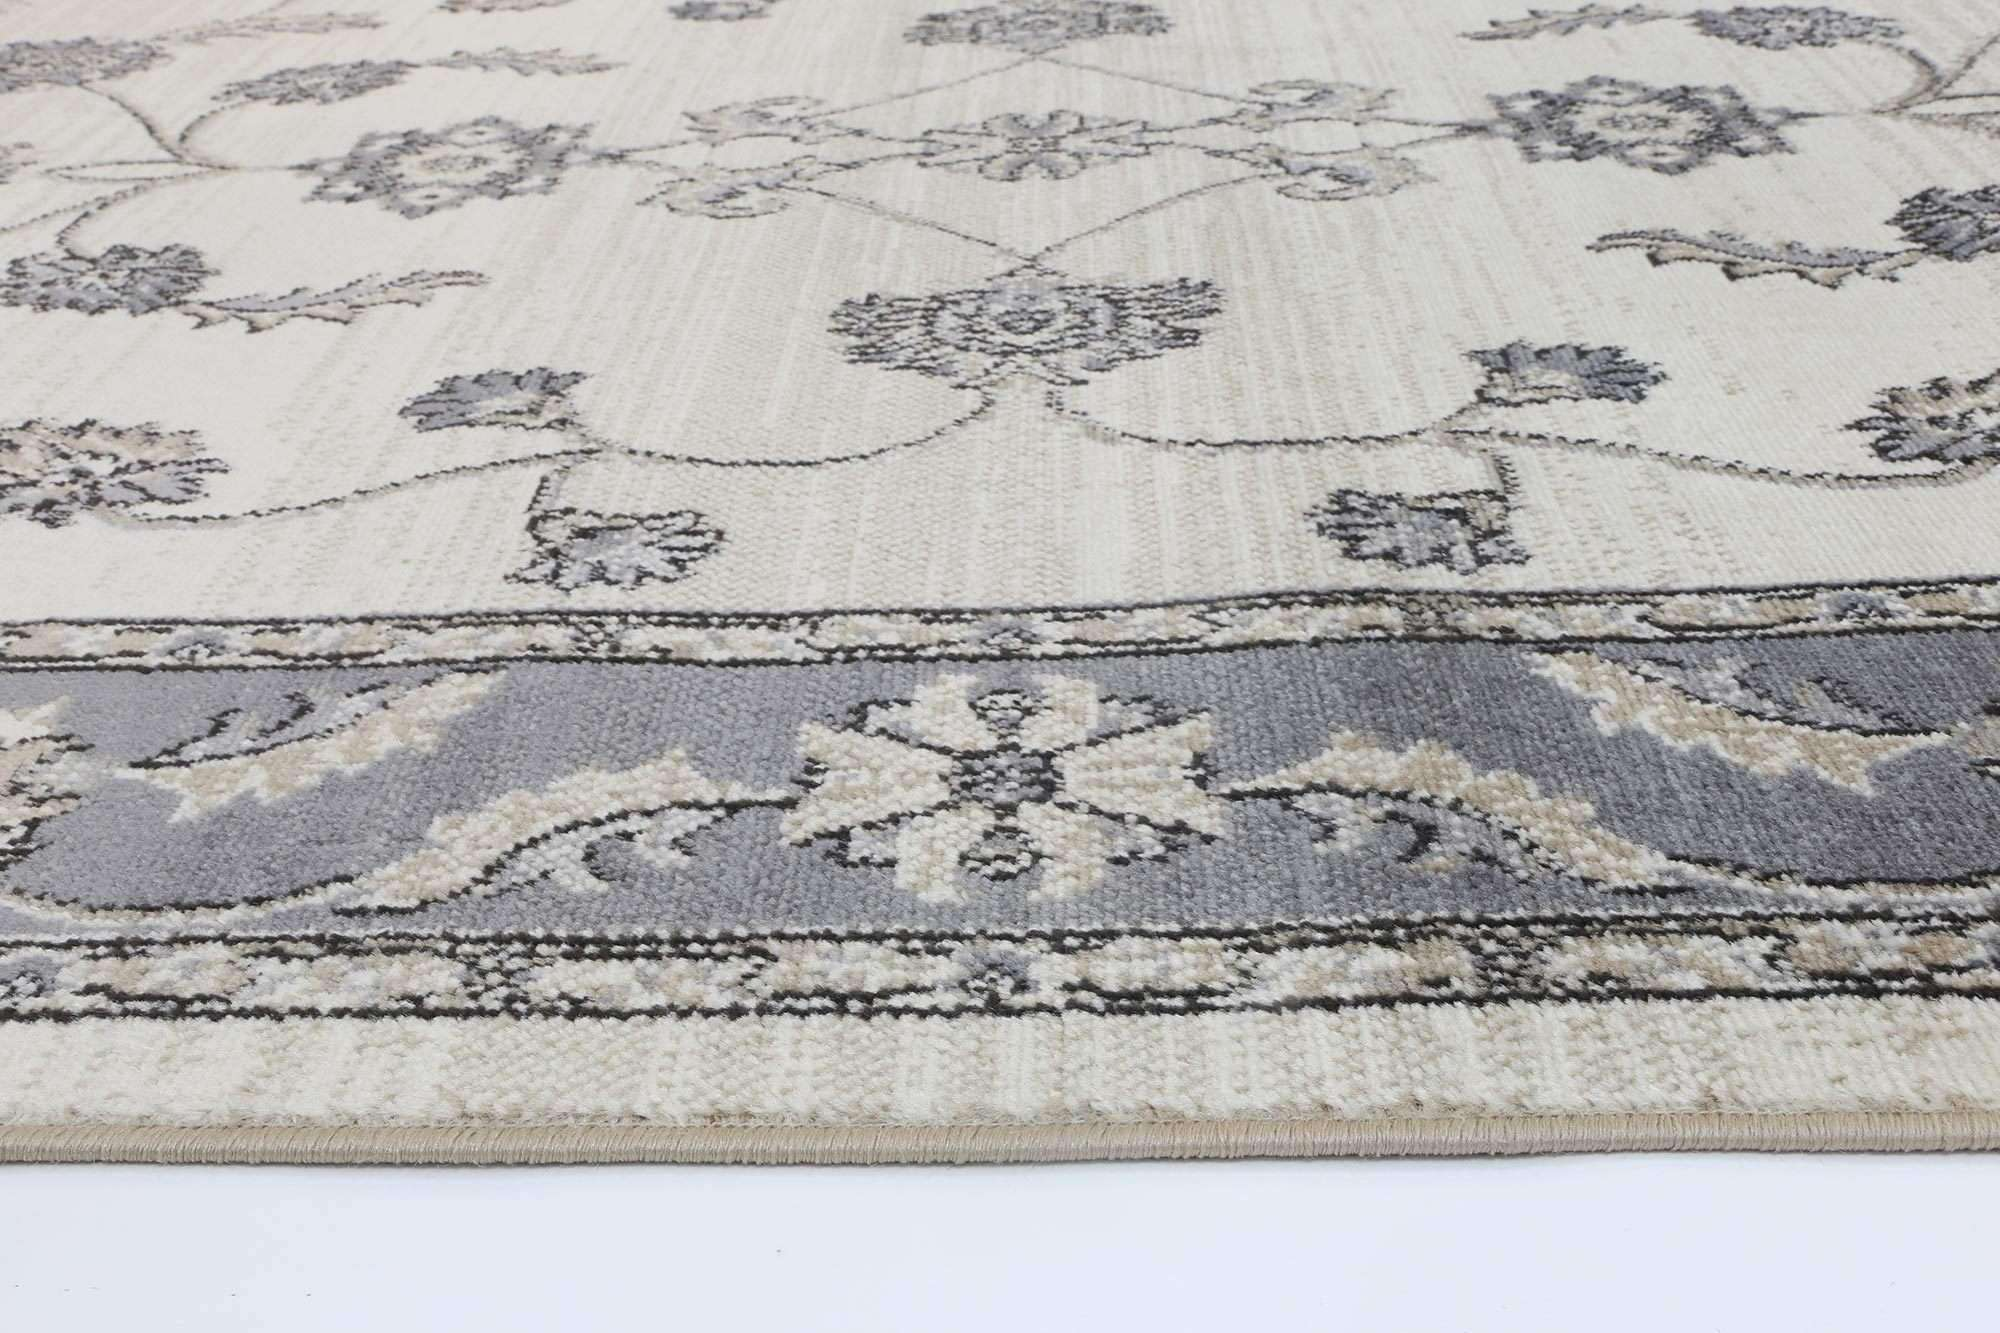 Eden Cream and Grey Traditional Rug, [cheapest rugs online], [au rugs], [rugs australia]